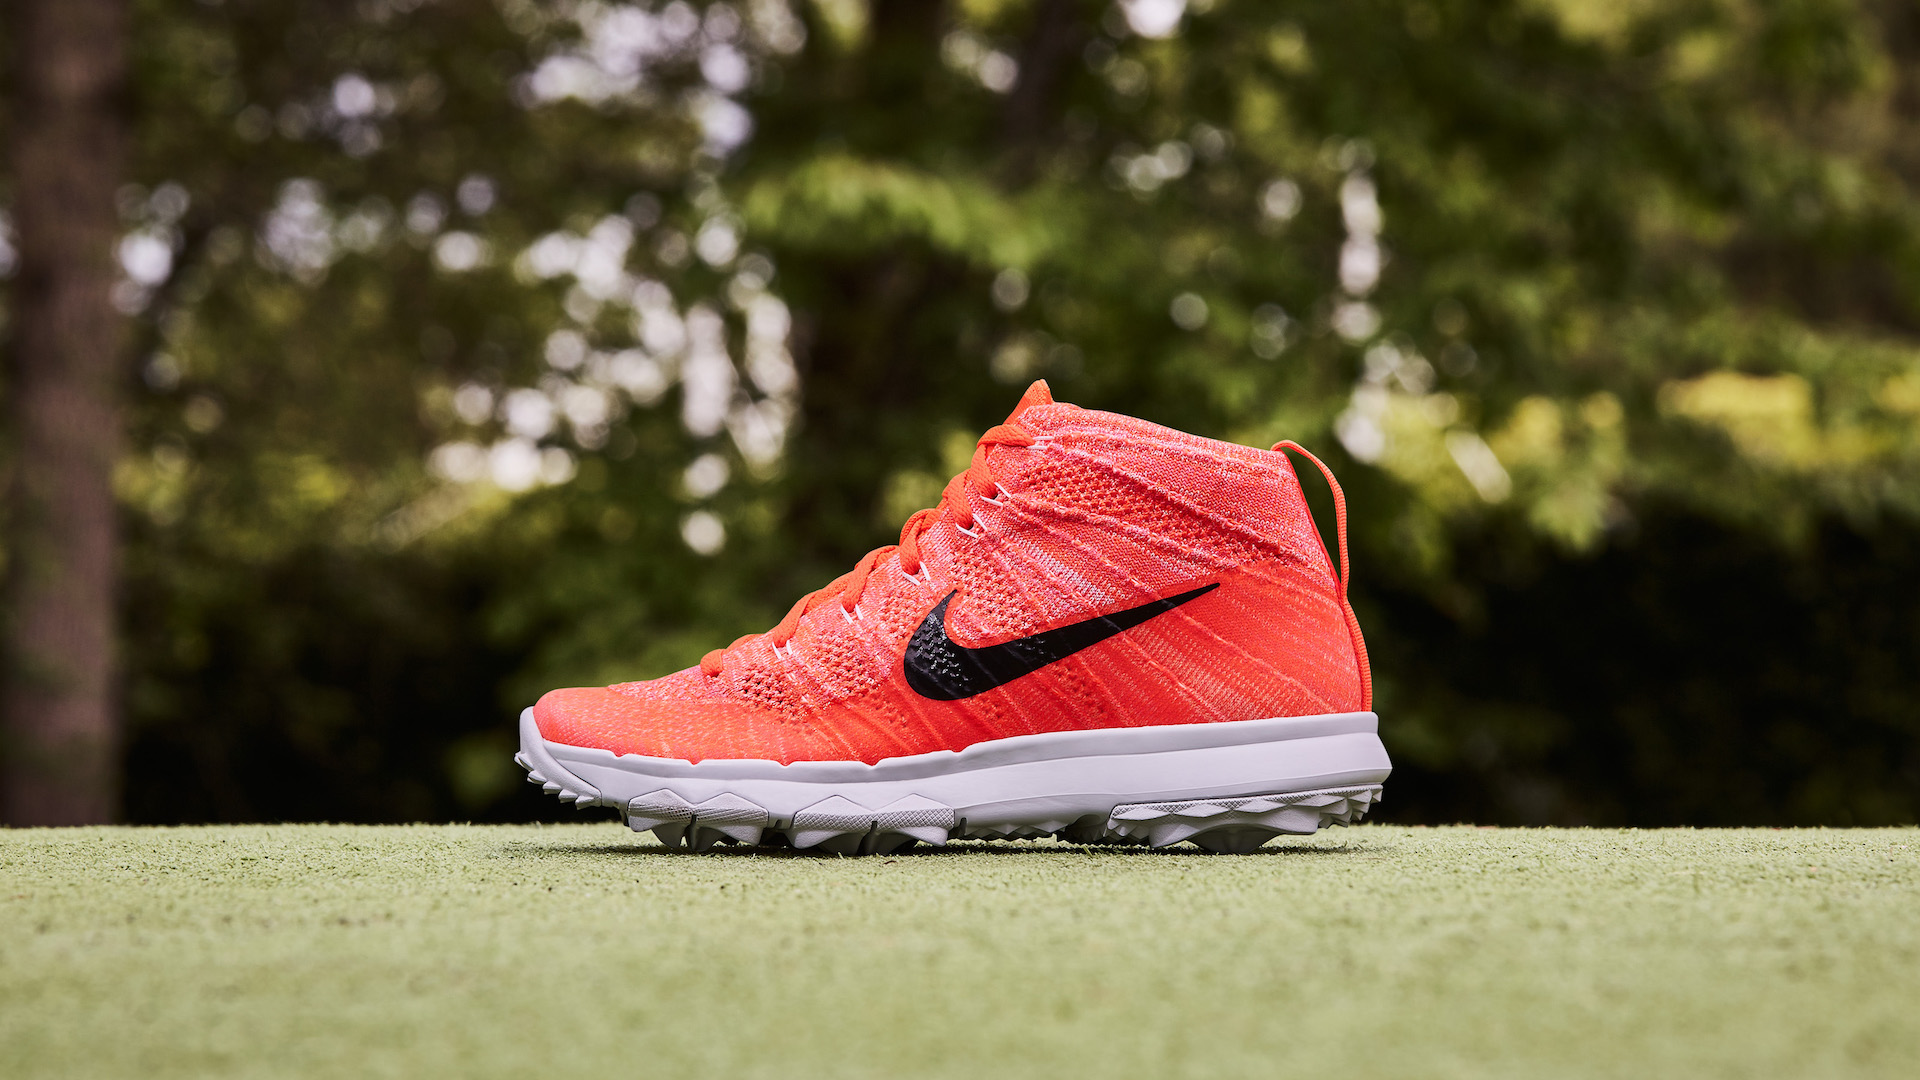 New Colours for Nike Flyknit Chukka